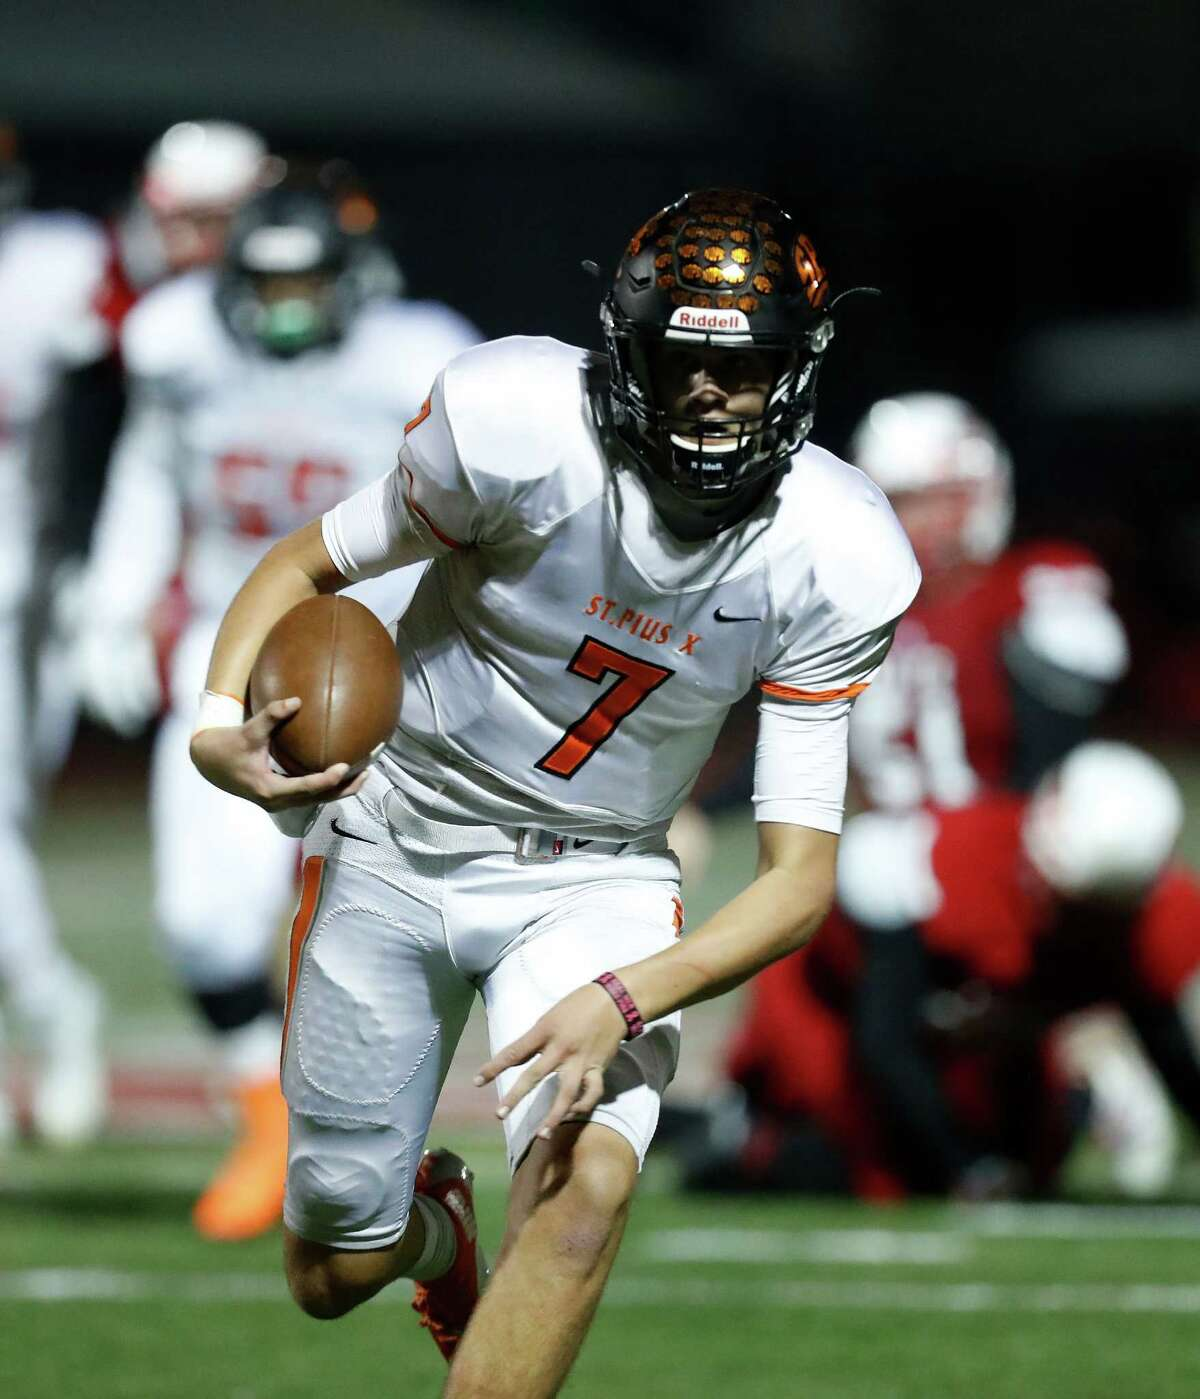 St. Pius X's quarterback Grant Gunnell (7) runs the ball during the second half of a high school football game between St. Pius X and St. Thomas High Schools at St. Thomas, Friday,Nov. 4, 2016 in Houston.